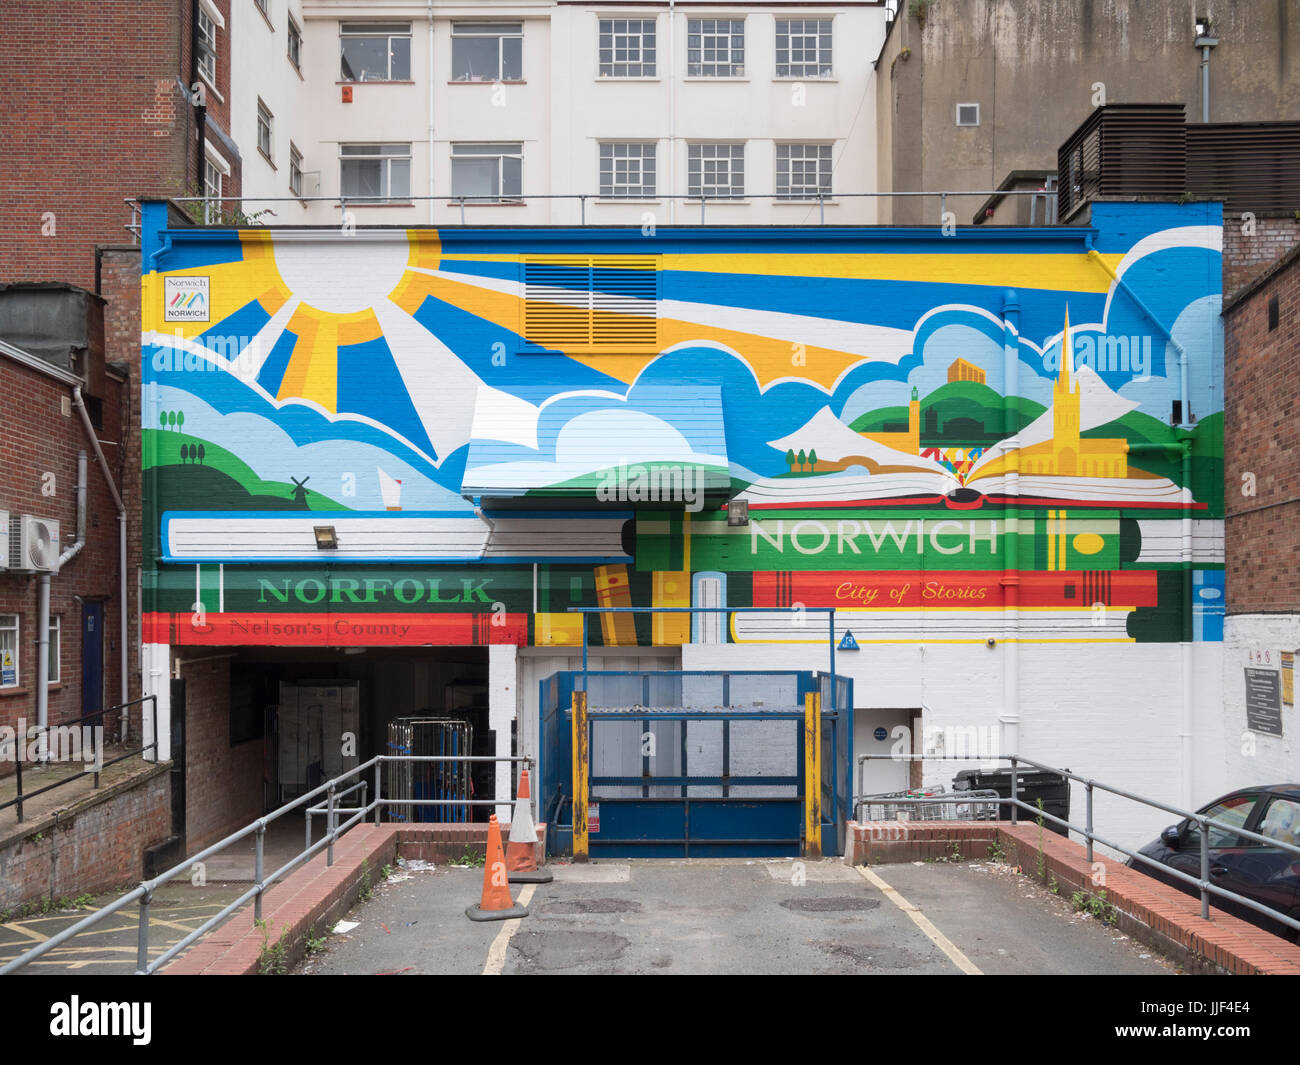 A colourful mural or wall art on a building in the city of Norich Norfolk UK - Stock Image